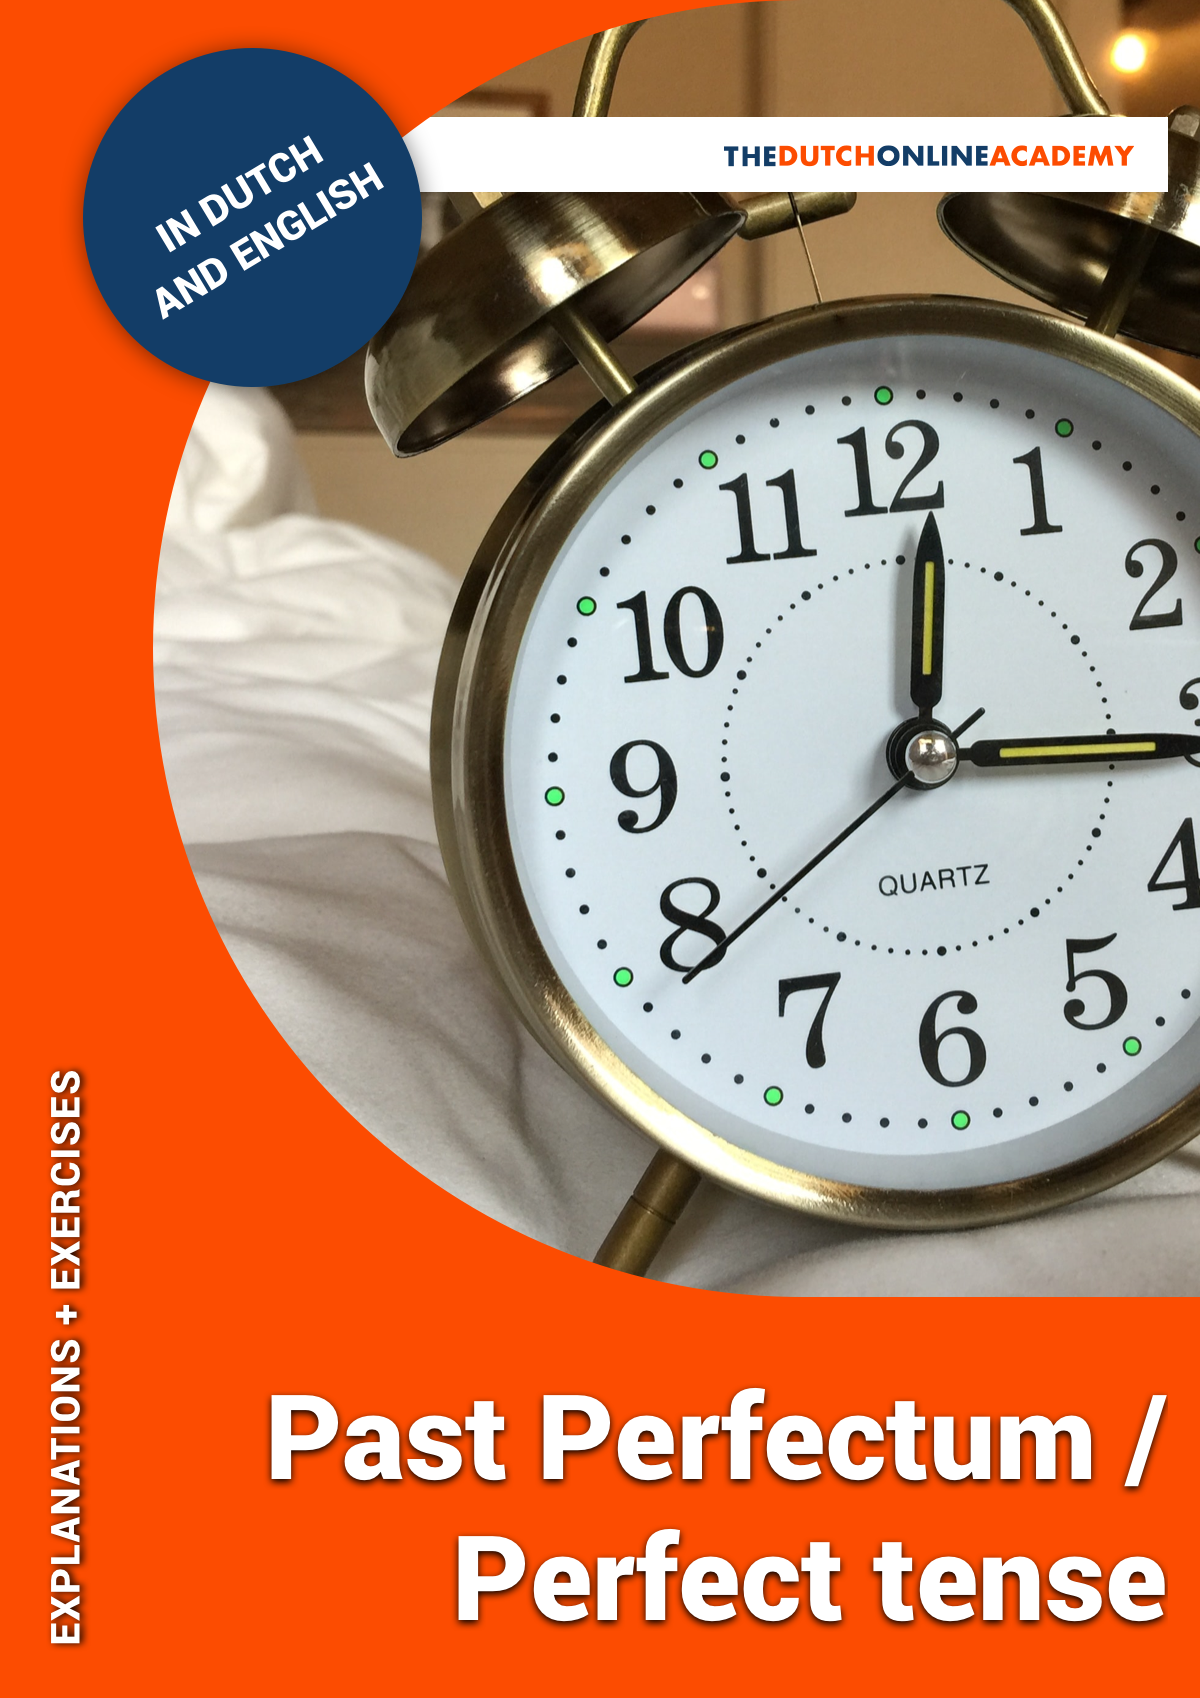 Learn Dutch with Alles over Perfectum